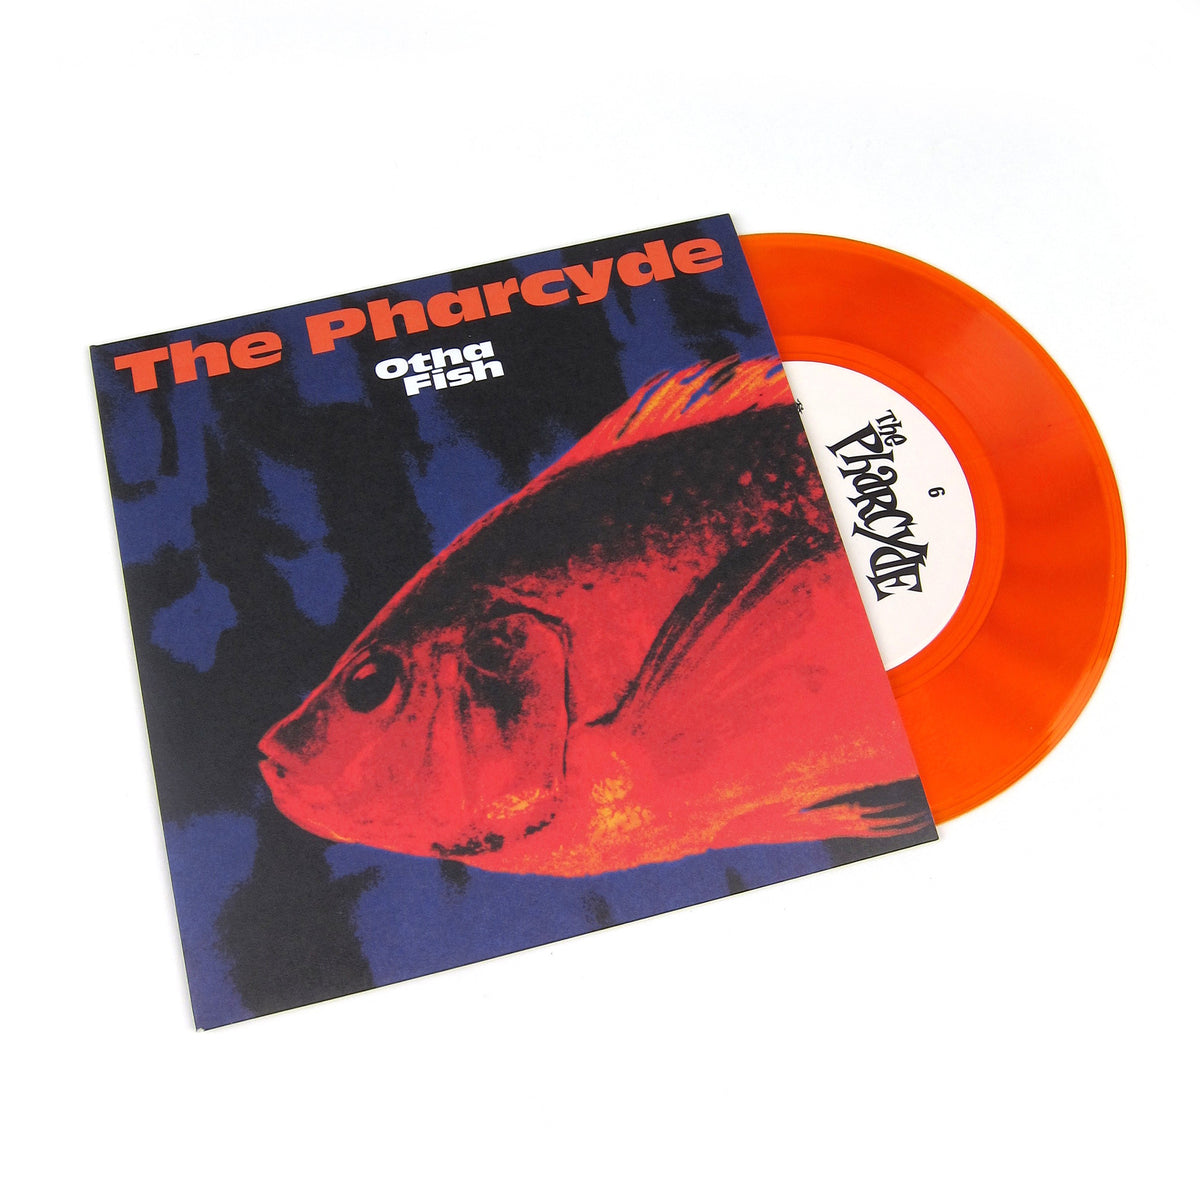 The Pharcyde: Otha Fish (Colored Vinyl) Vinyl 7""